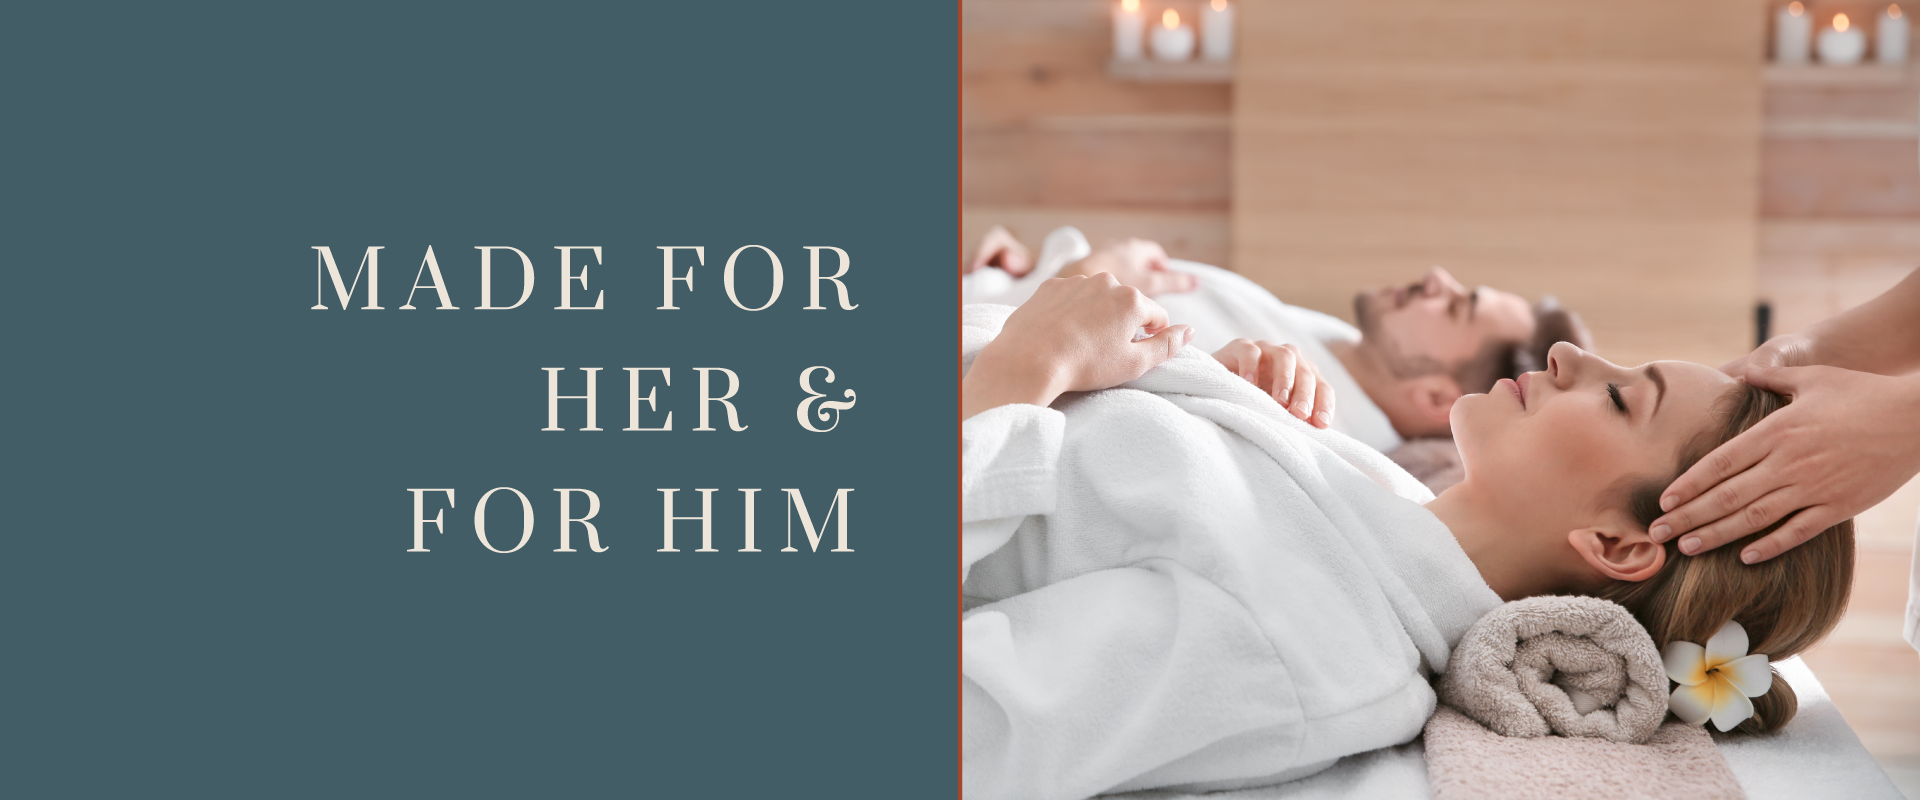 Made for Her & for Him